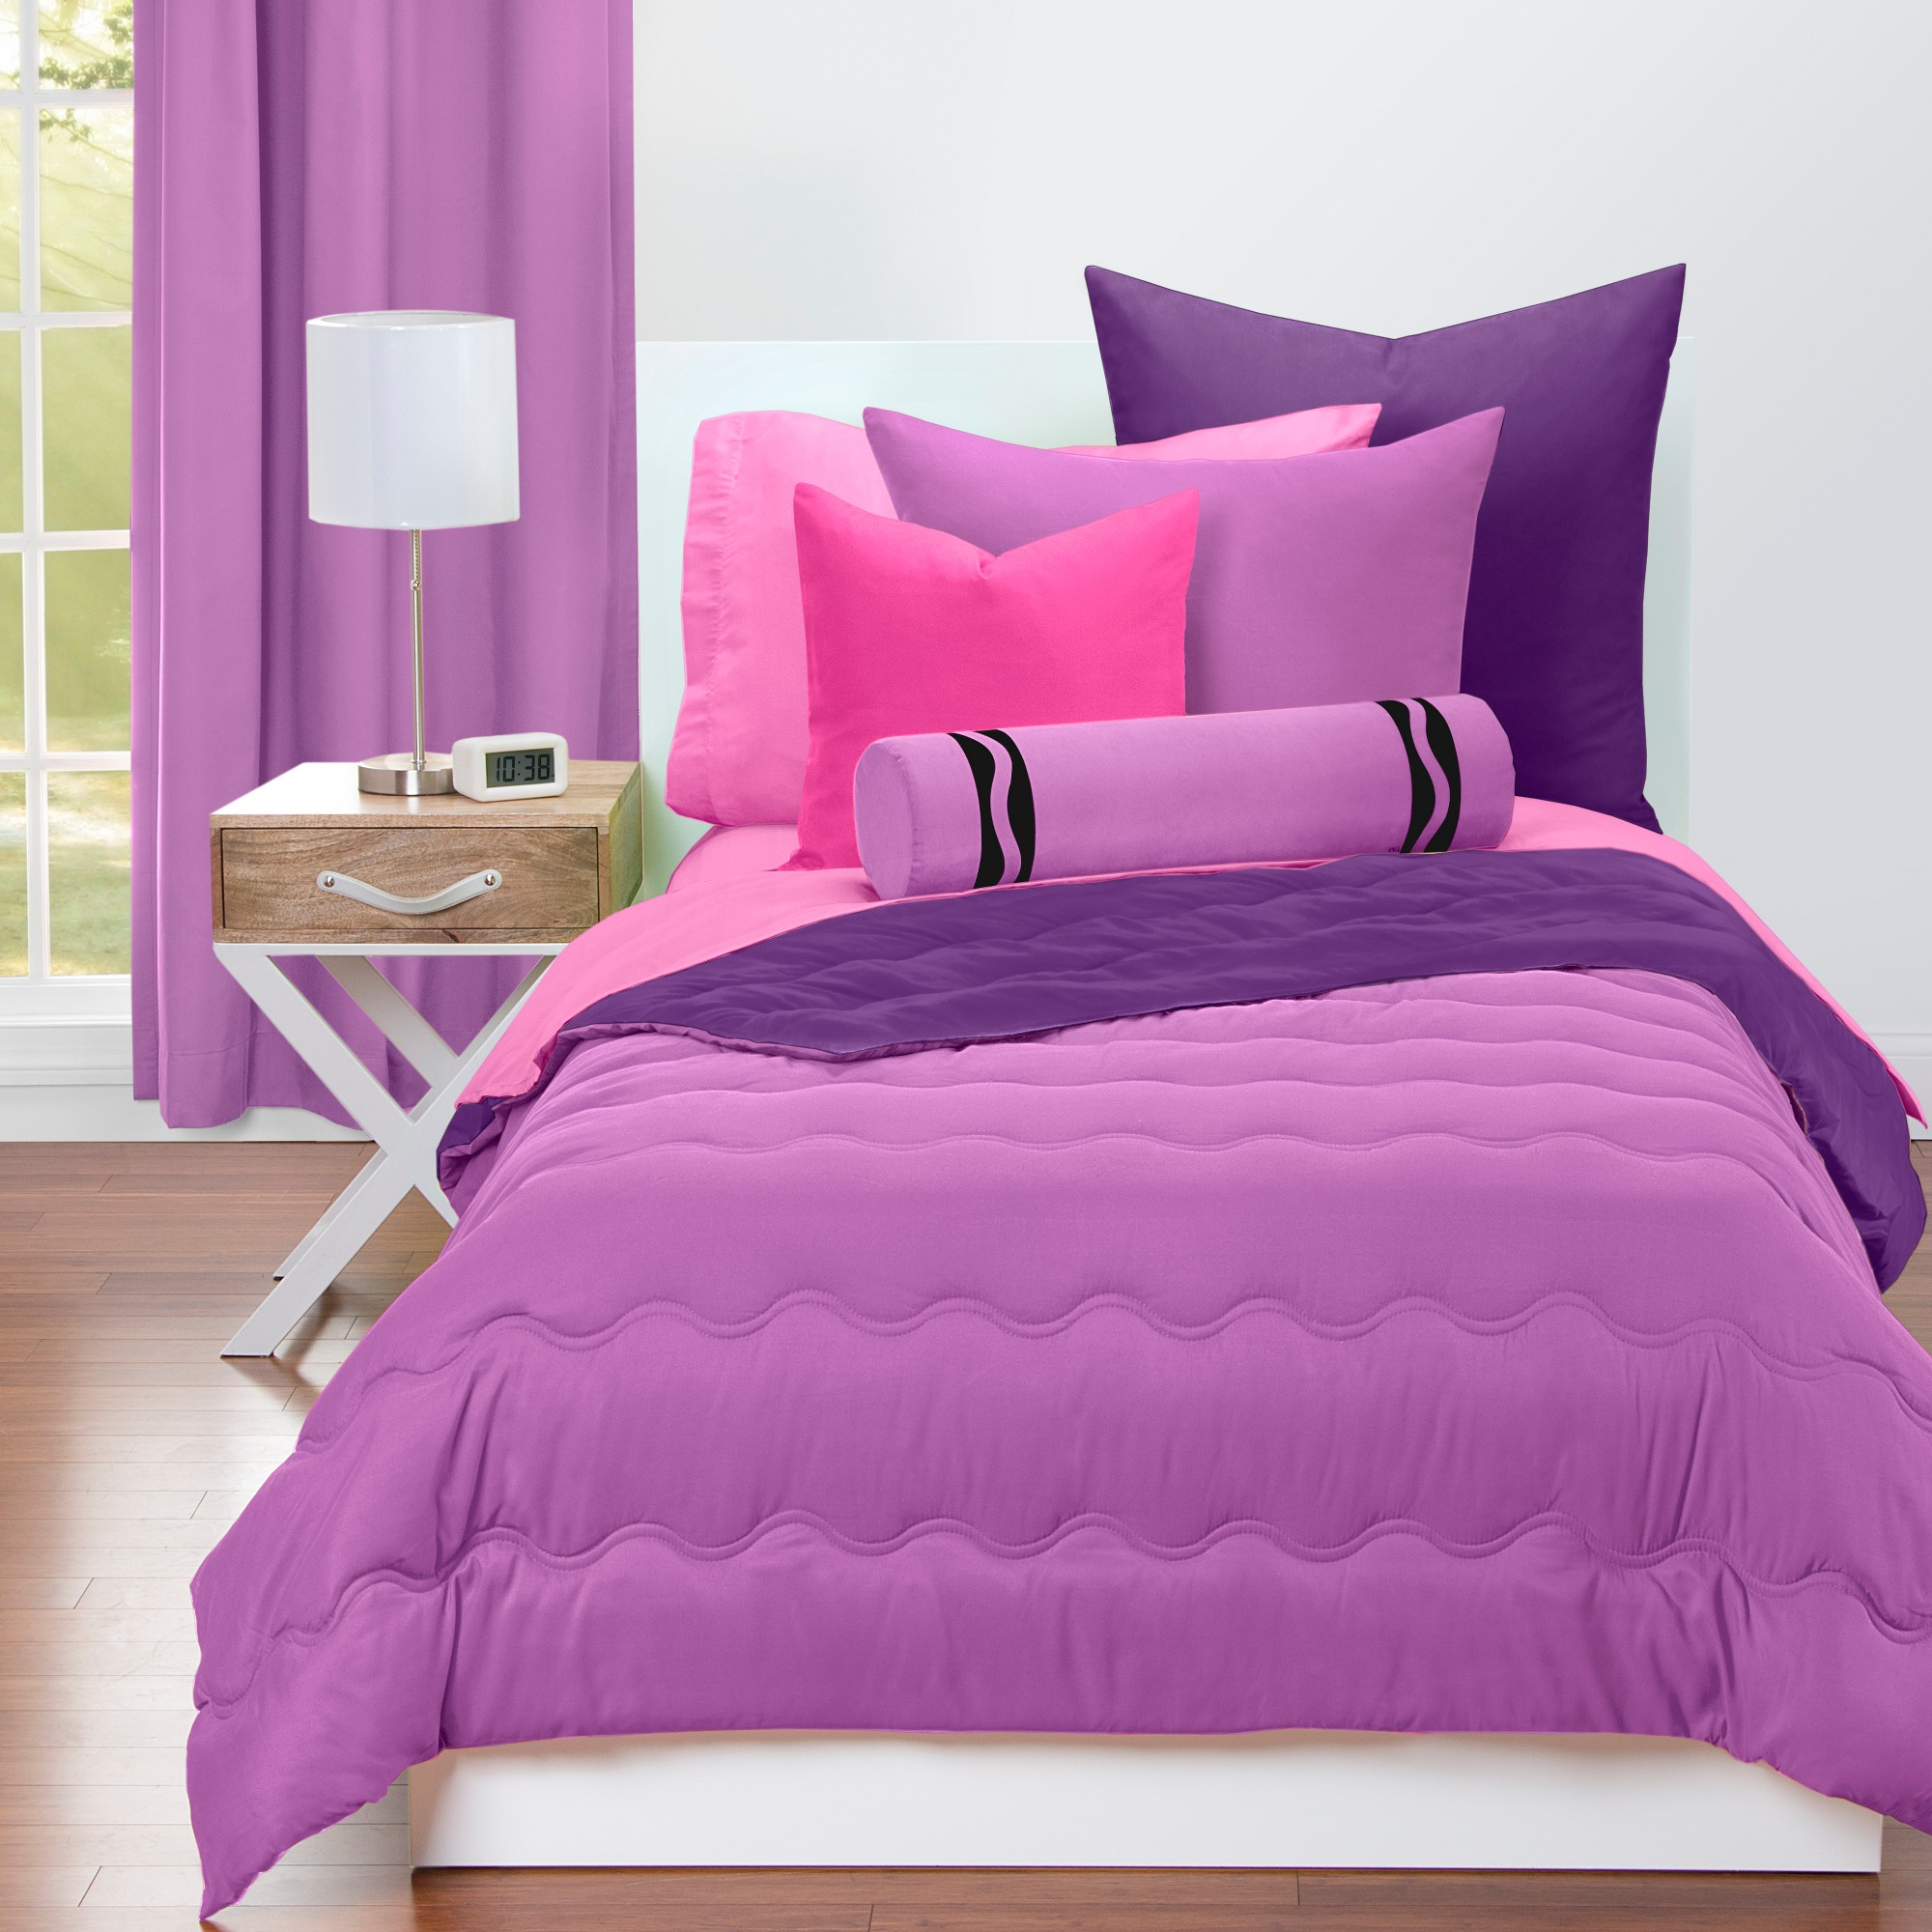 striped bedding comforter hypoallergenic down bath product microfiber overstock today free shipping lilac